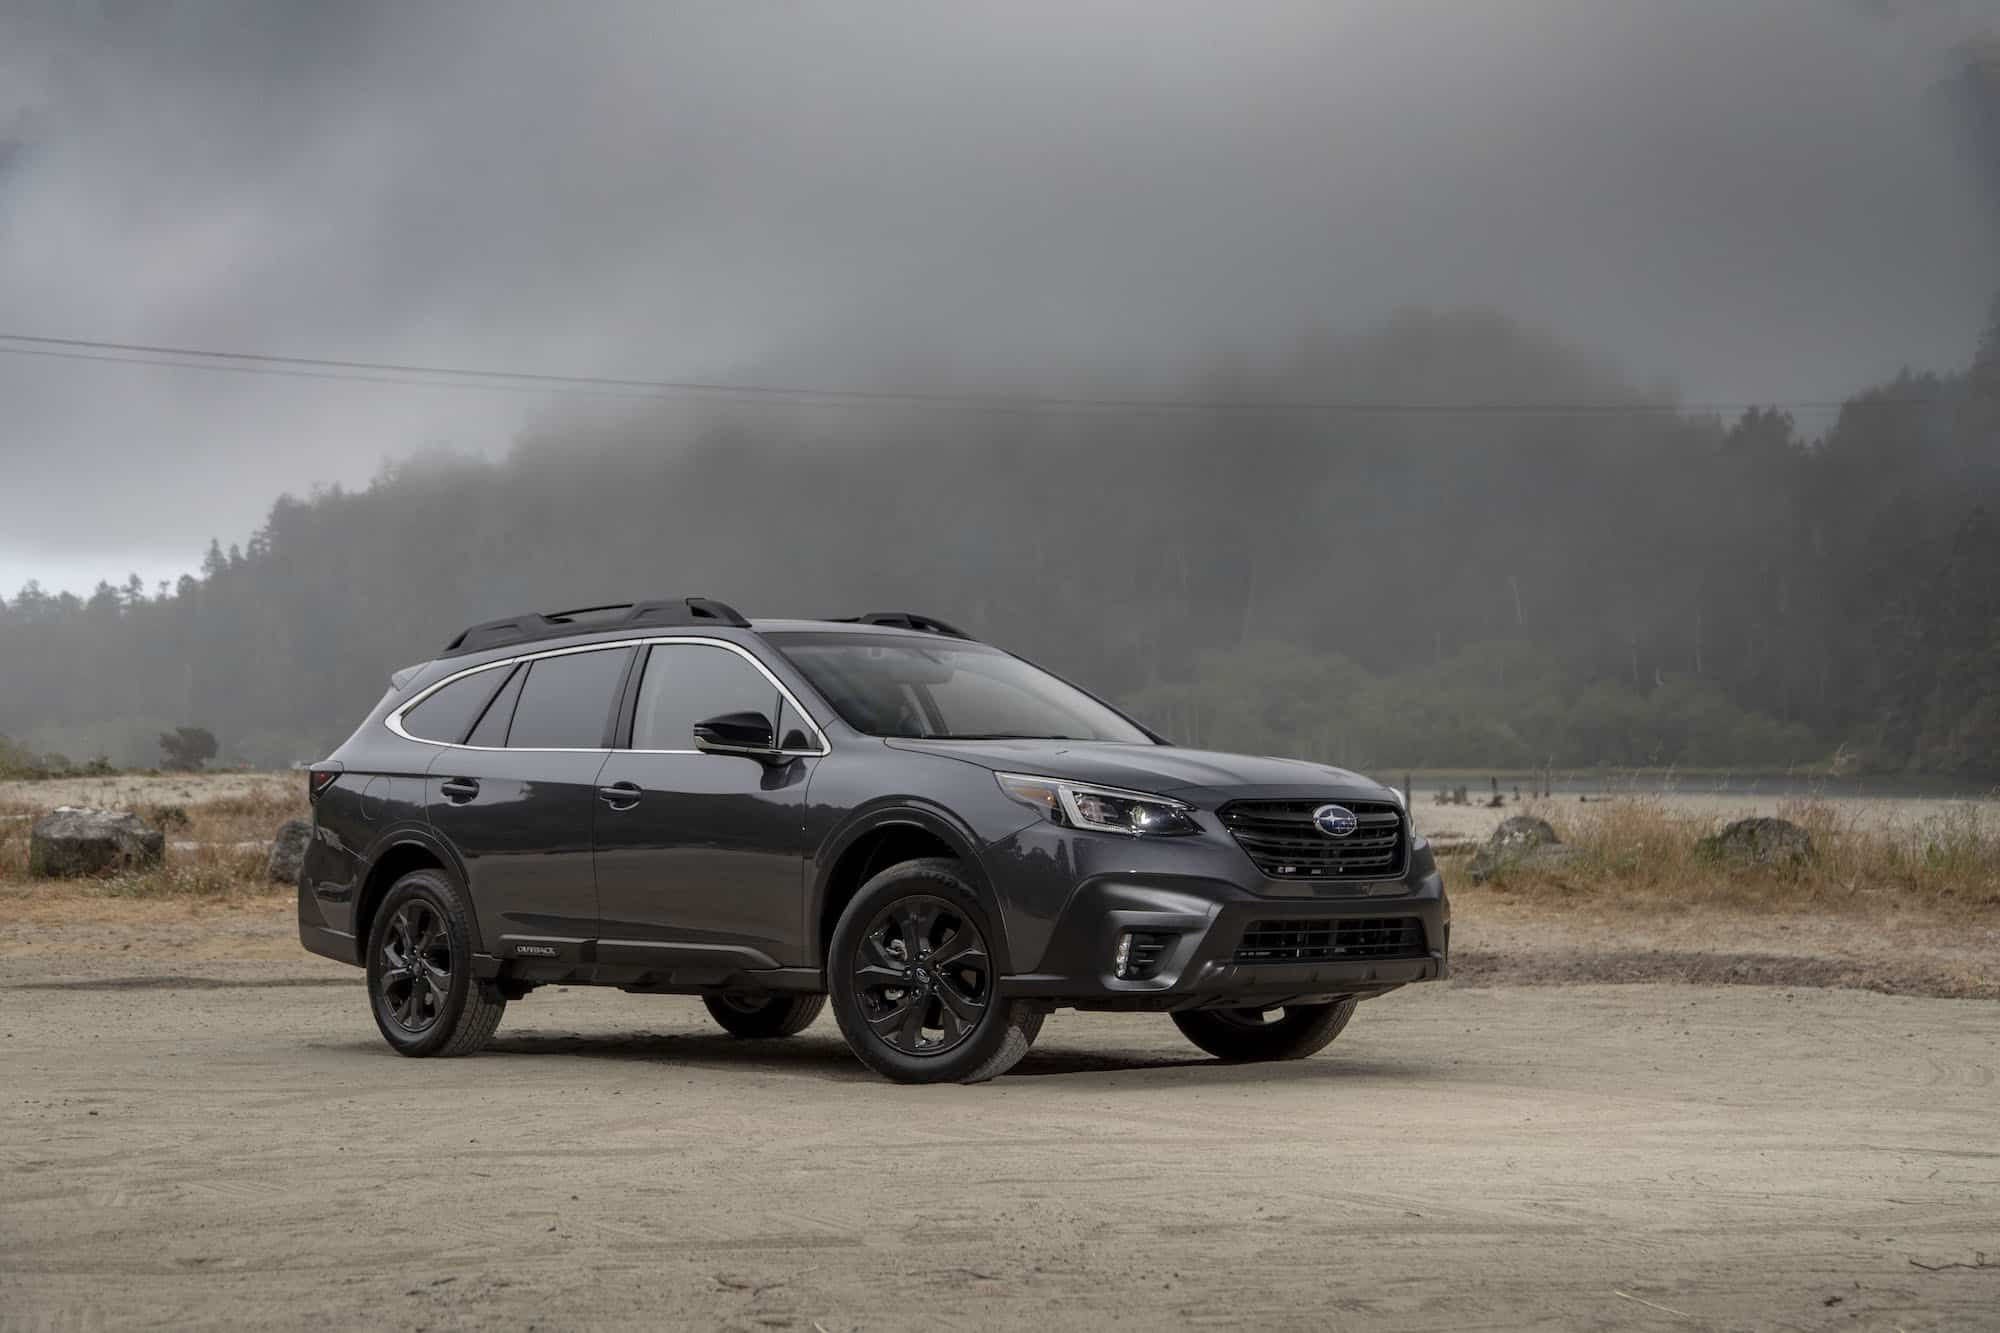 2020 Subaru Outback Review in 2020 (With images) Subaru